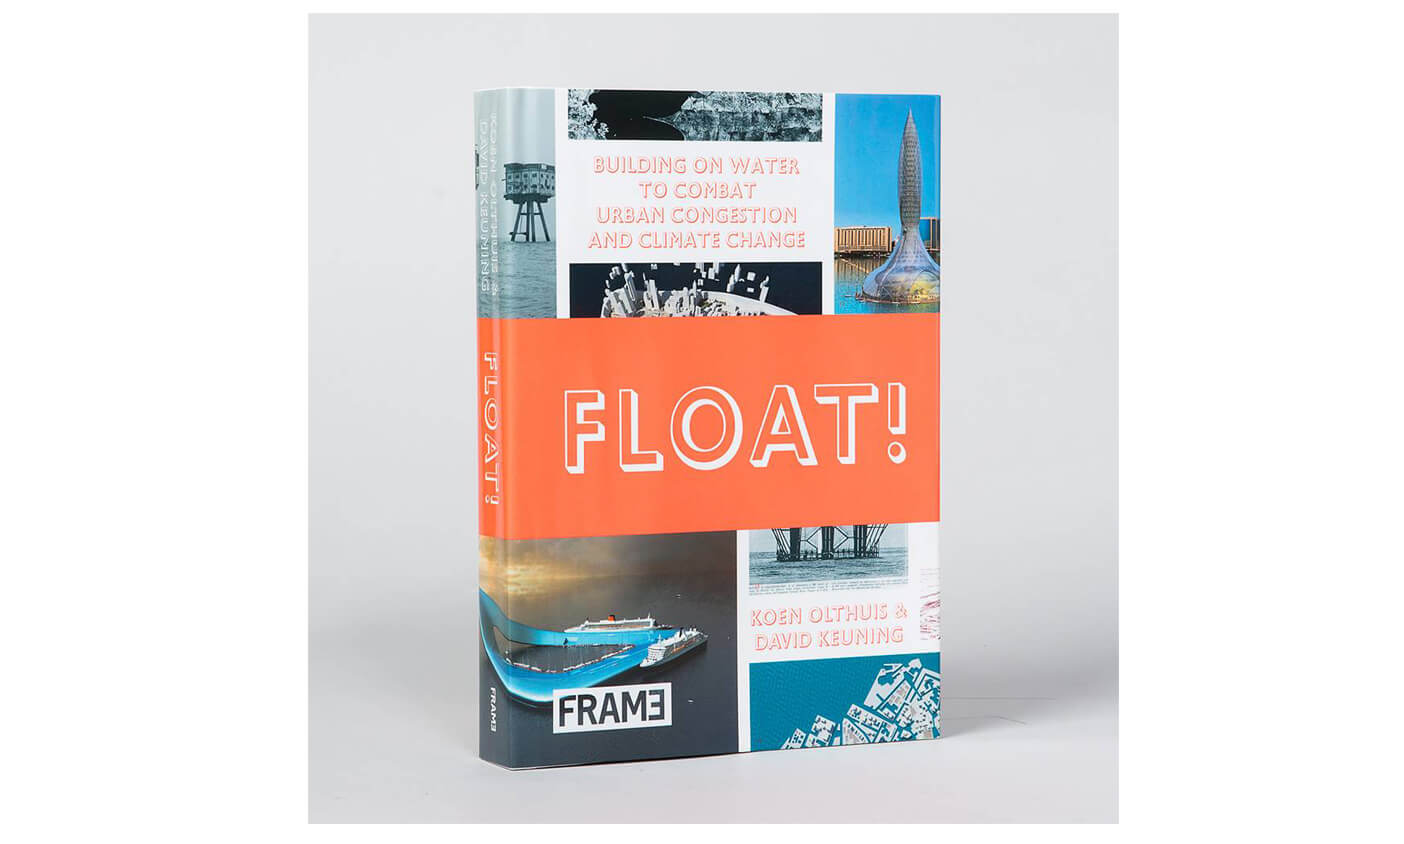 FLOAT! In Top 10 Best Science Books 2010